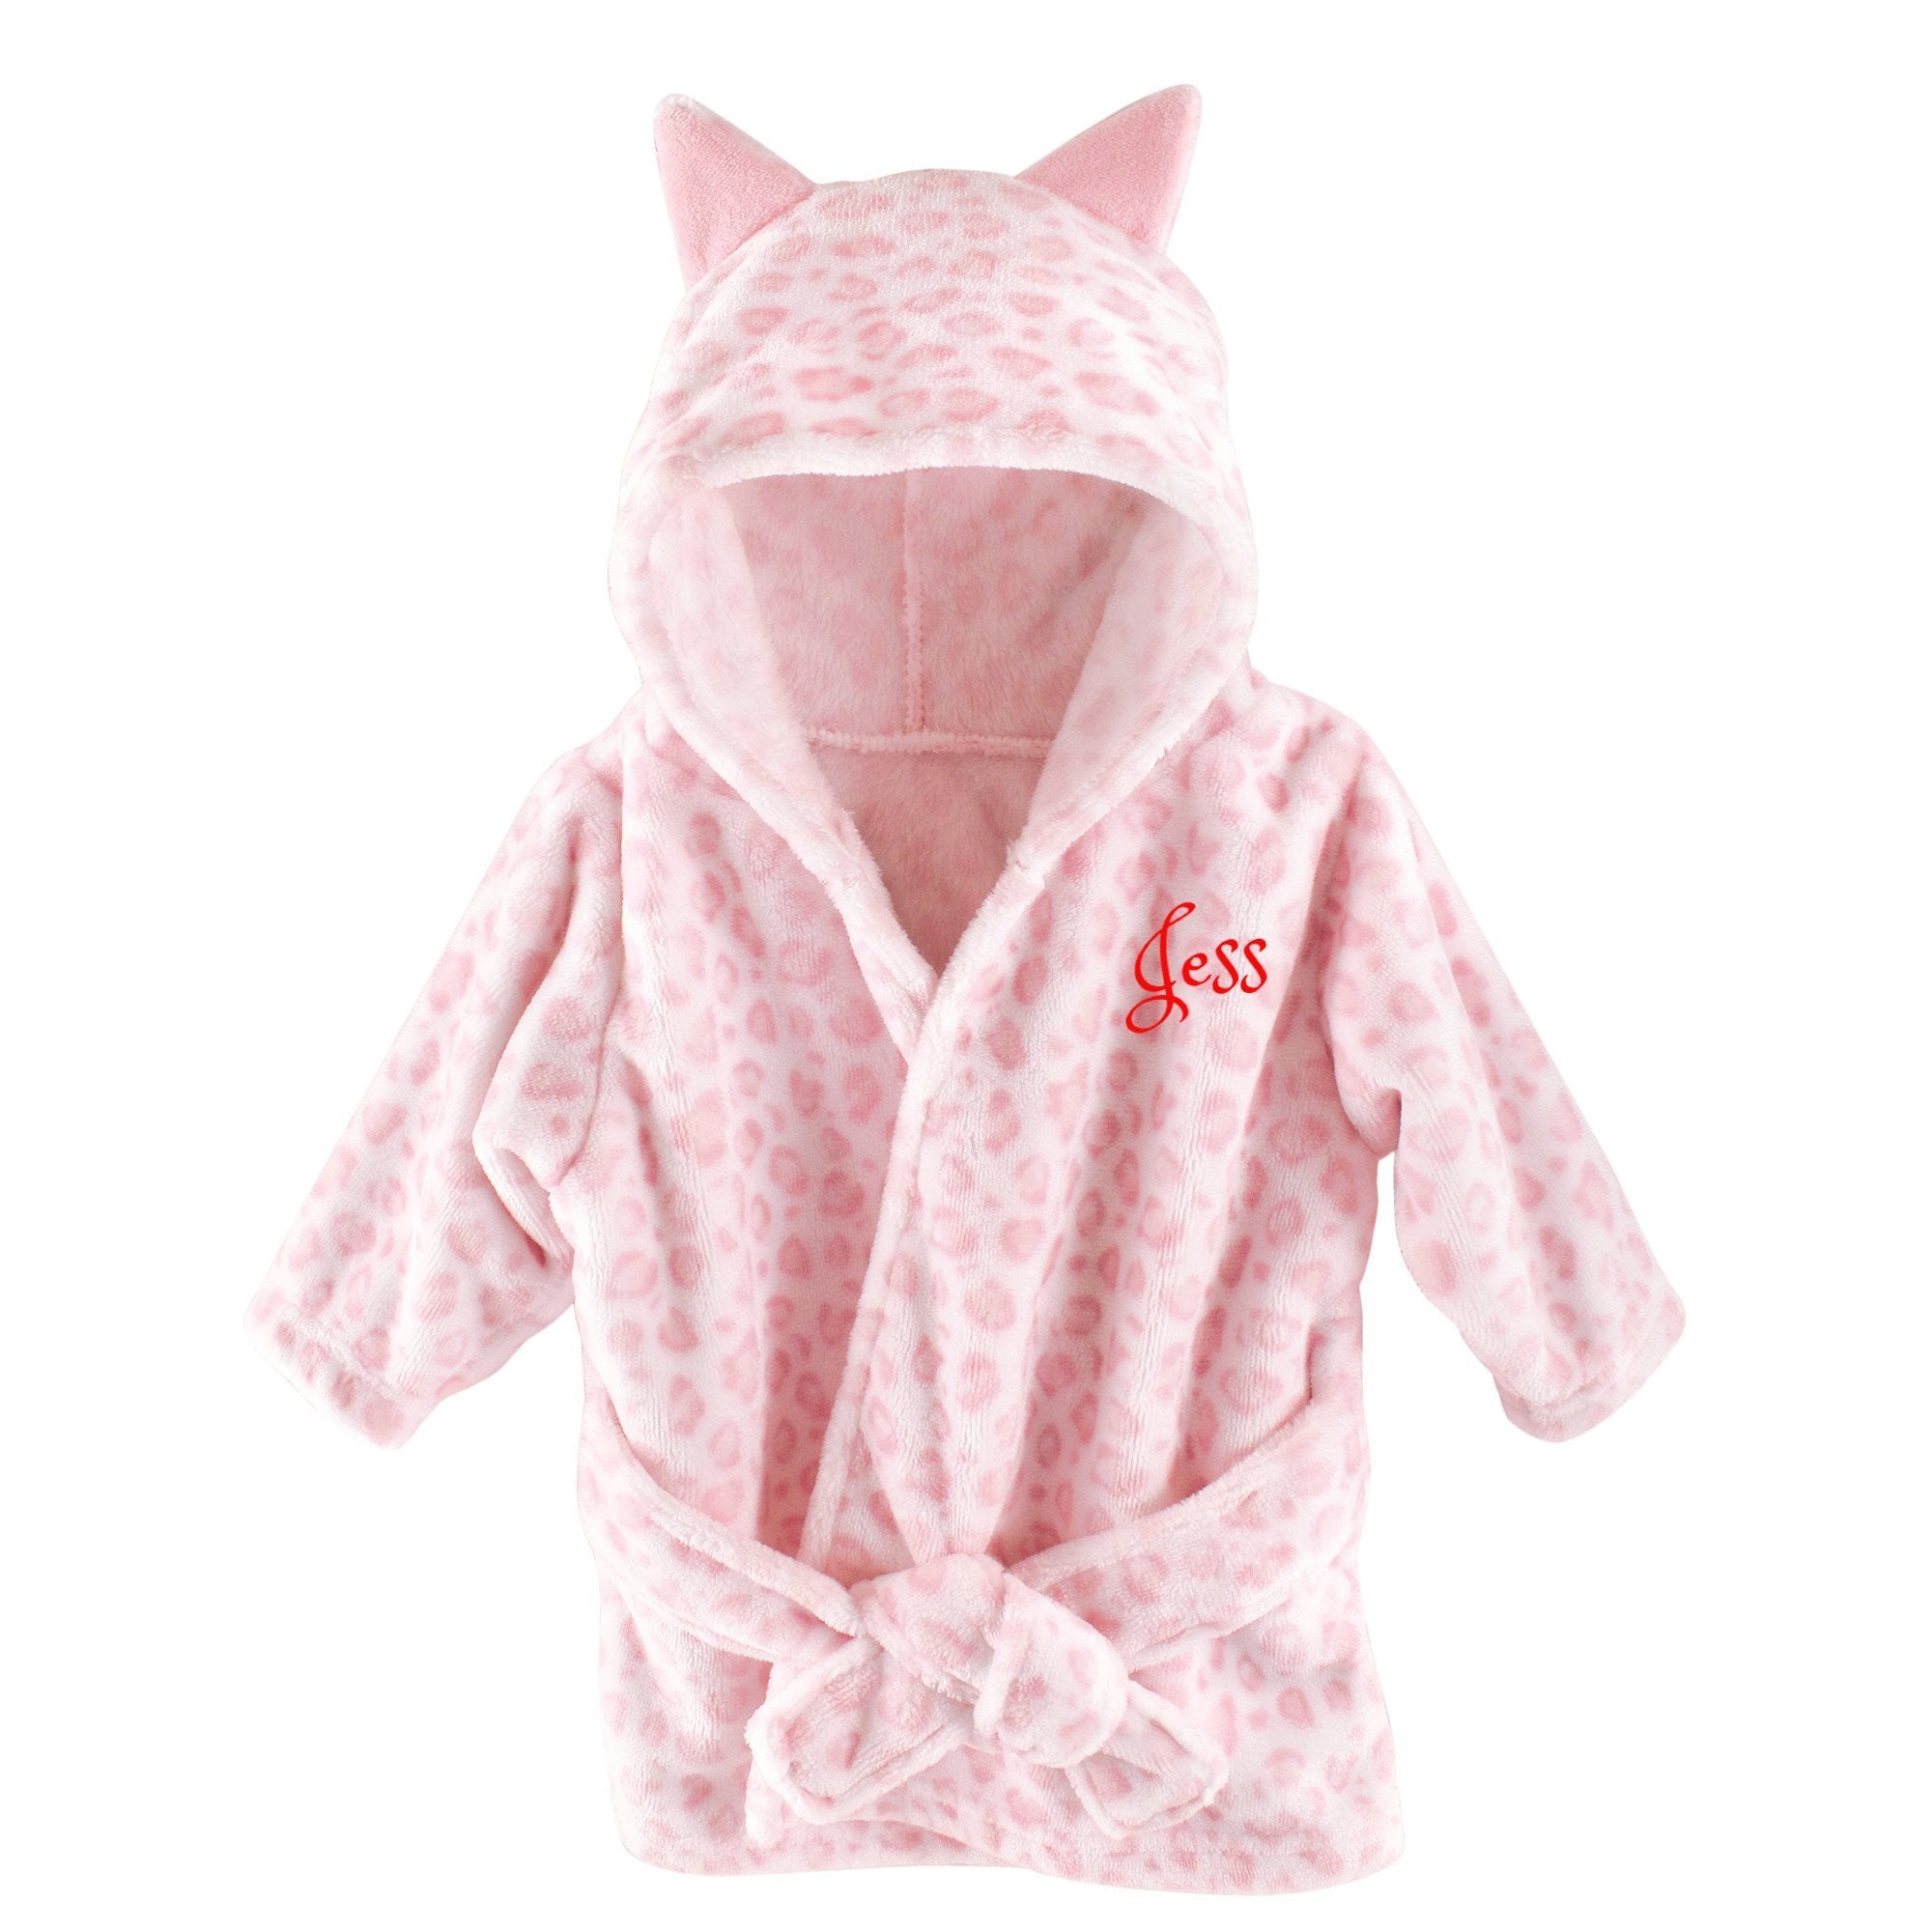 371357c49ba3 Personalized Hebrew Name Plush Baby Bathrobe - Pink Leopard - FREE Shipping  ...